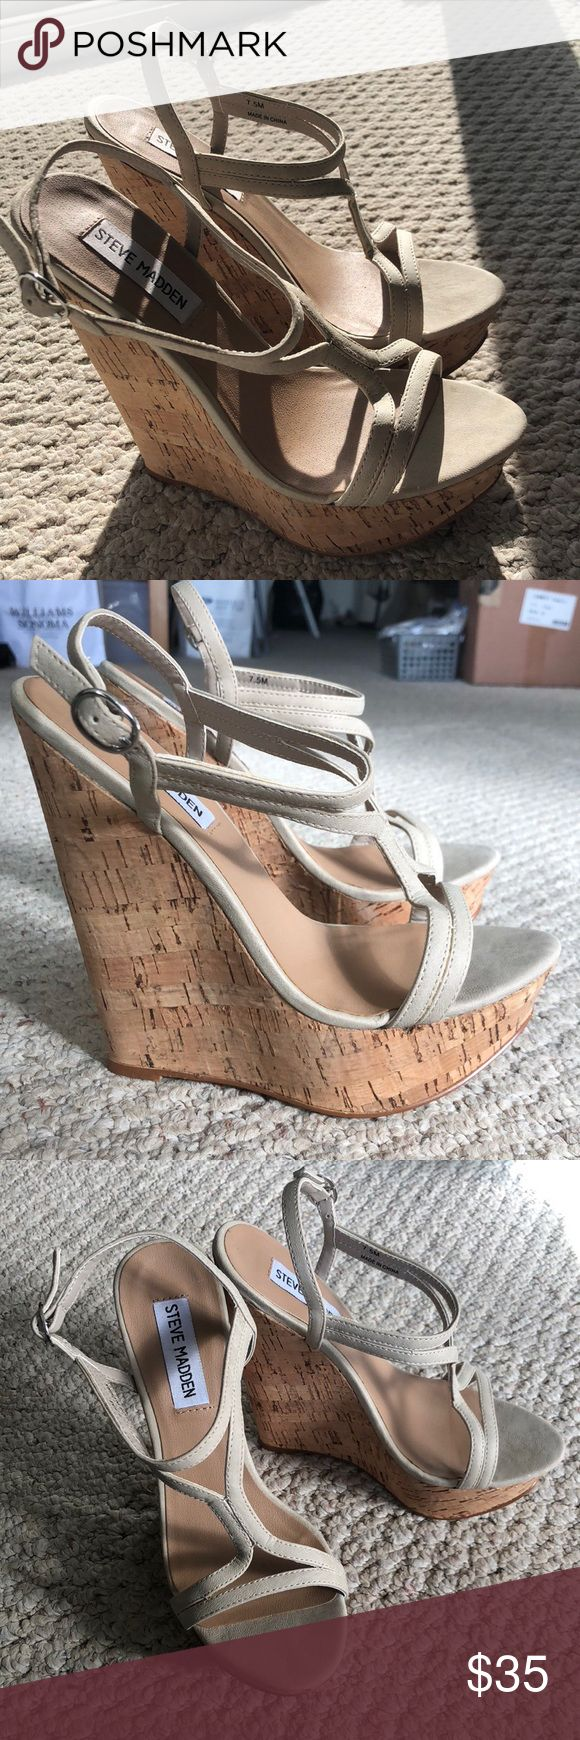 Steve Madden Beige Wedges Steve Madden Beige Wedges in great condition! (Only worn once) Super cute for dressing up a casual outfit or wearing with any dress/skirt! Steve Madden Shoes Wedges